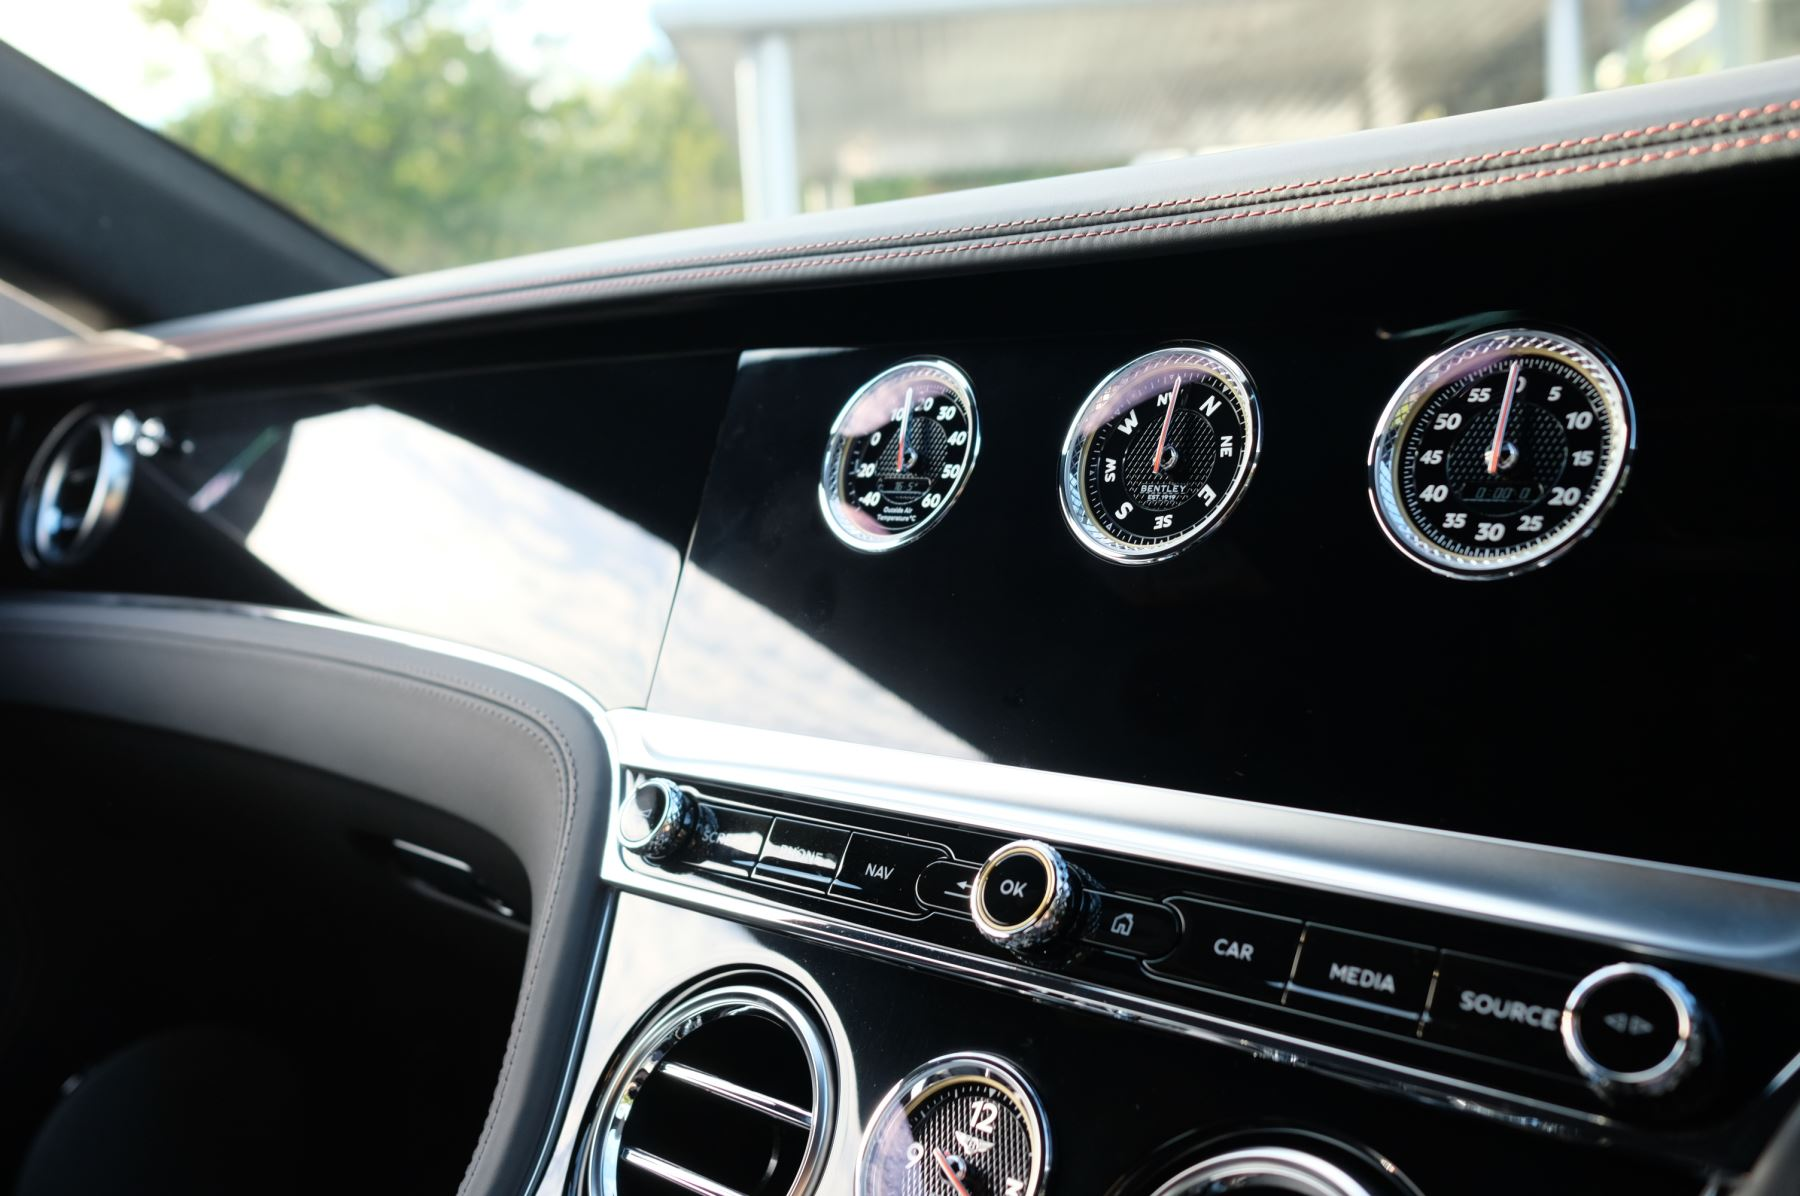 Bentley Continental GT 4.0 V8 2dr Auto [City+Touring Spec] image 18